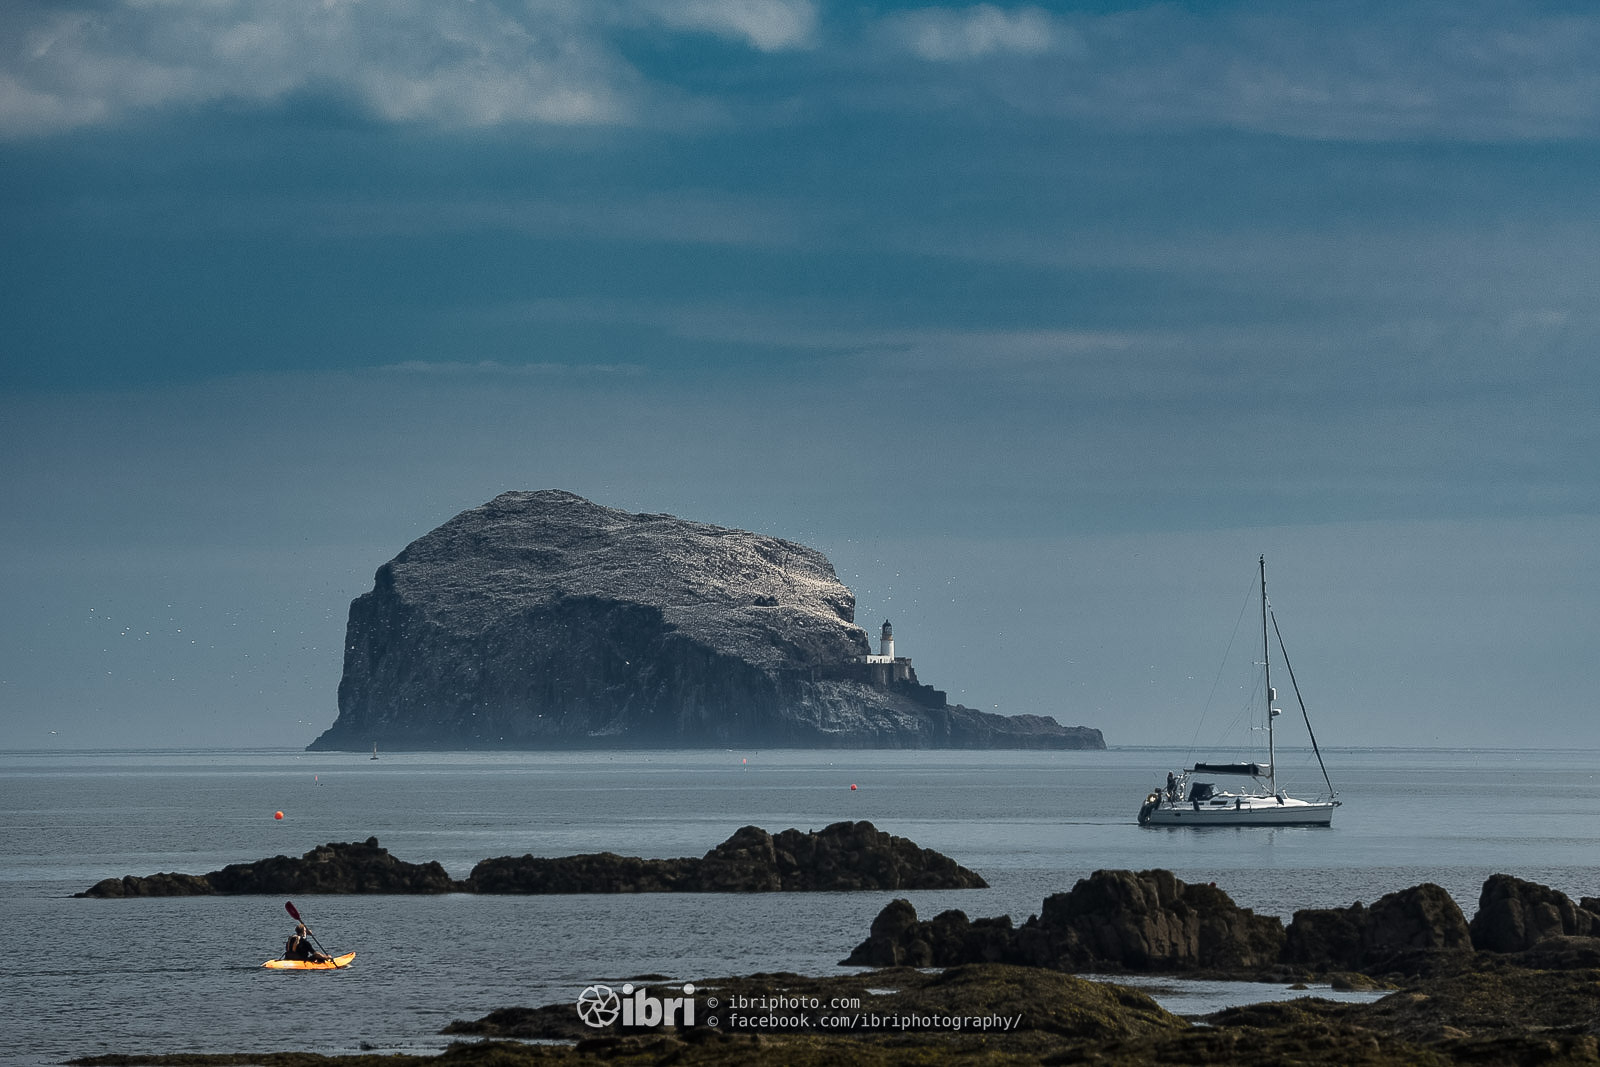 The Bass Rock in the Firth of Forth off North Berwick.